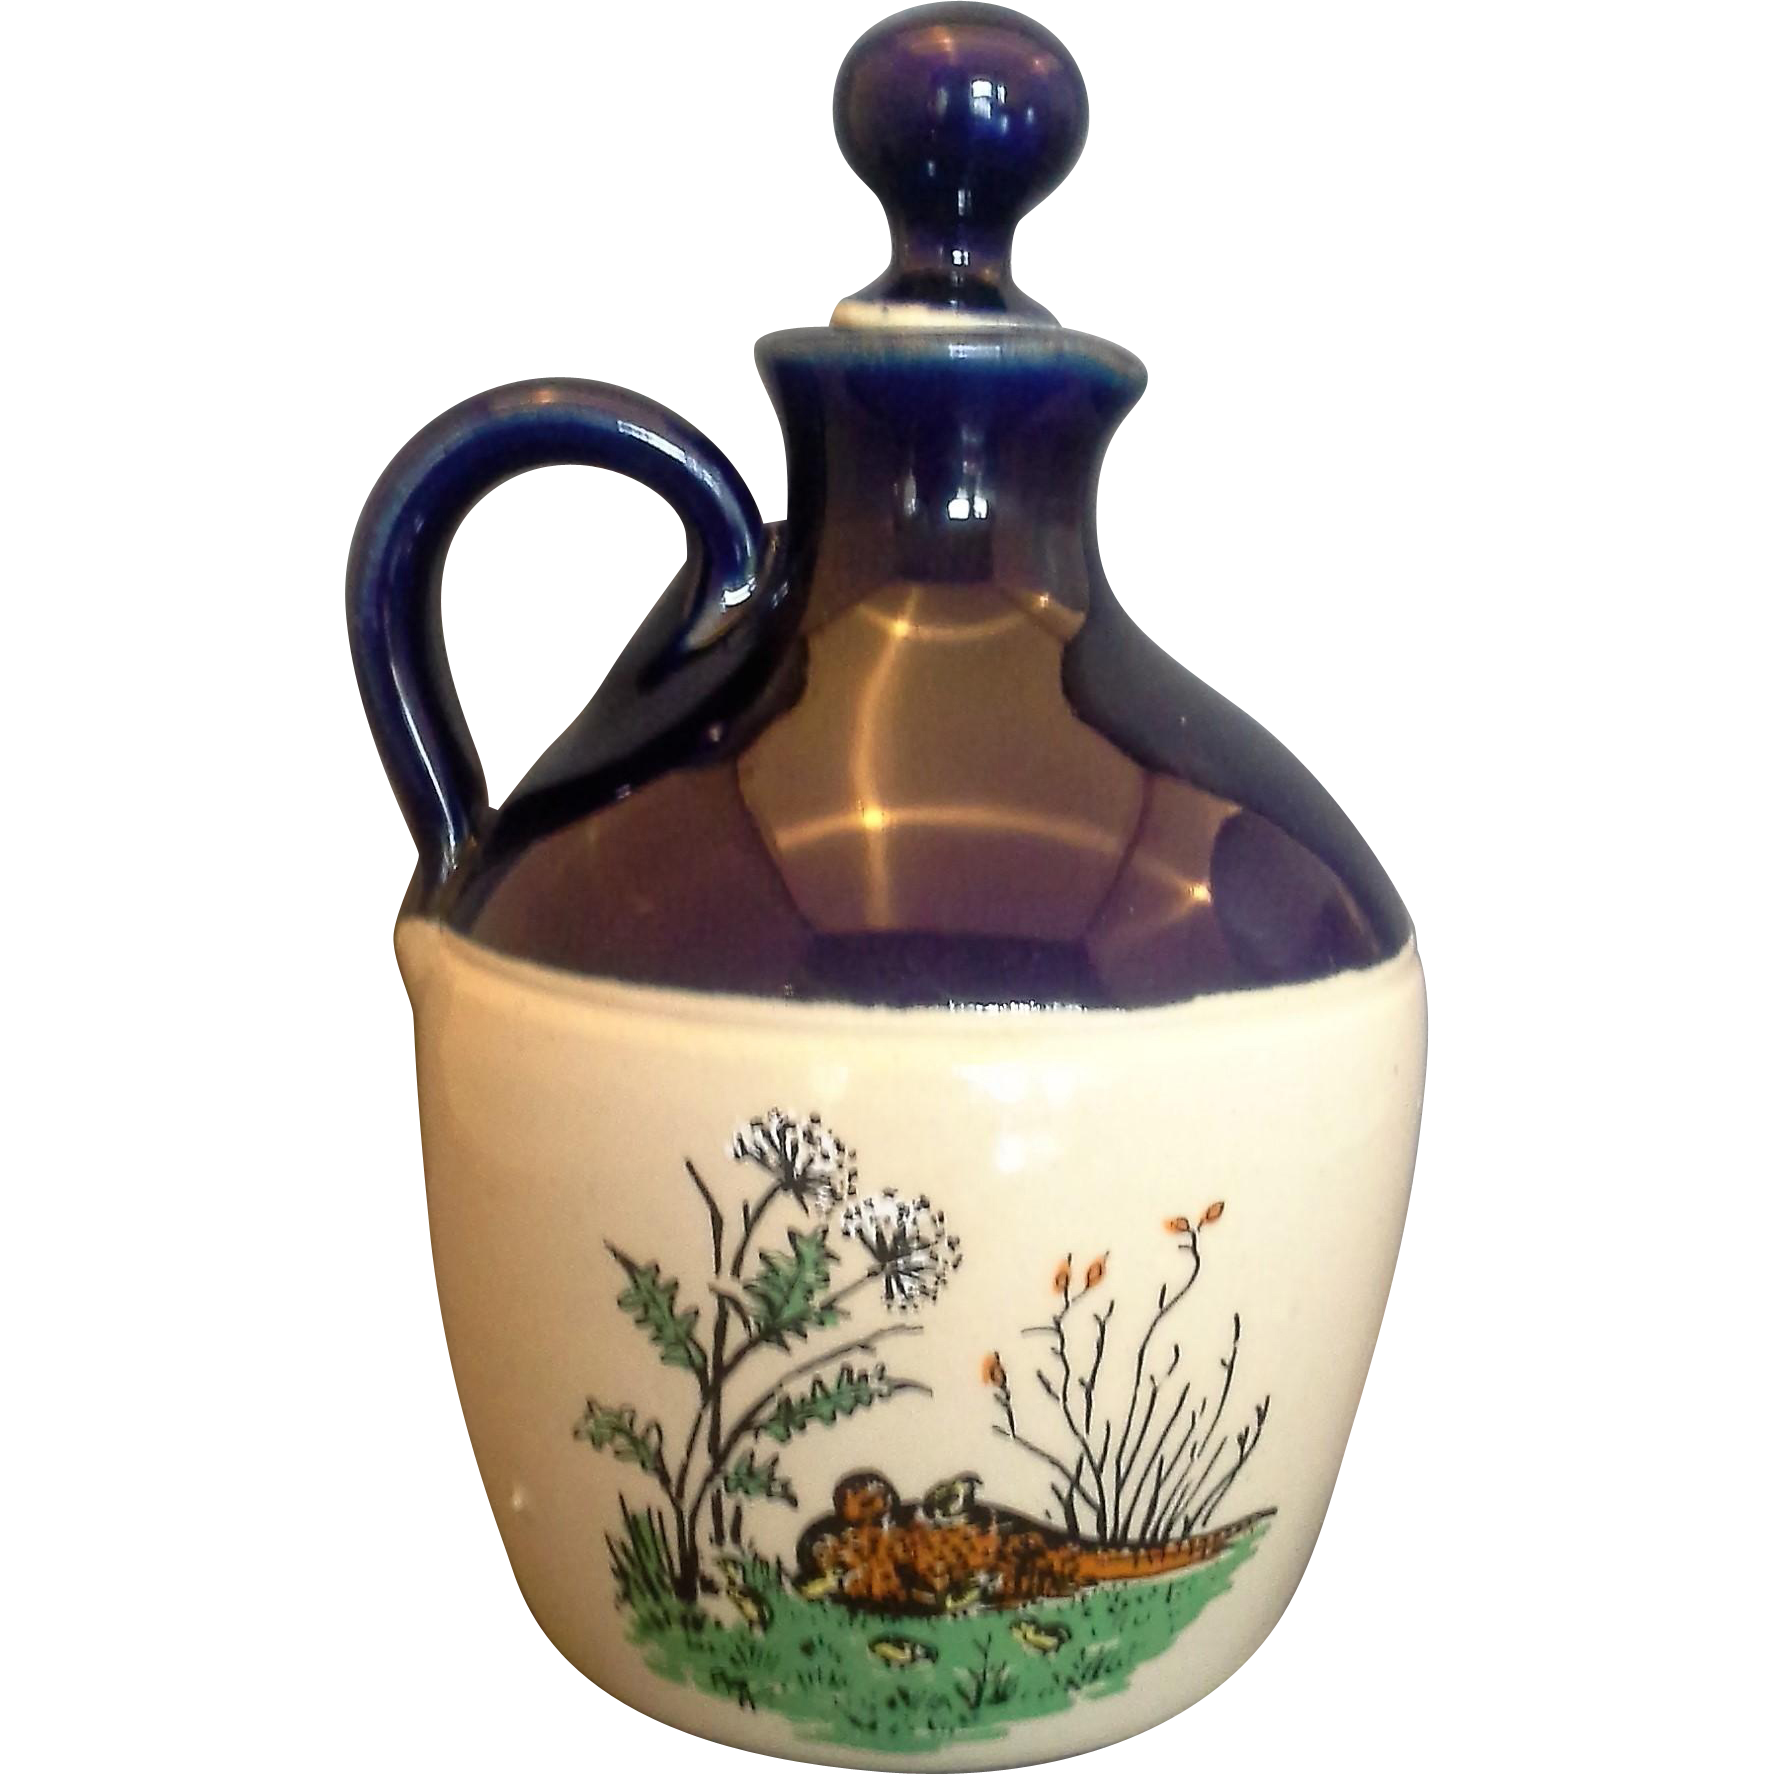 Govancroft Stoneware Jug Cobalt Blue Top Pheasant Decoration Made in Scotland